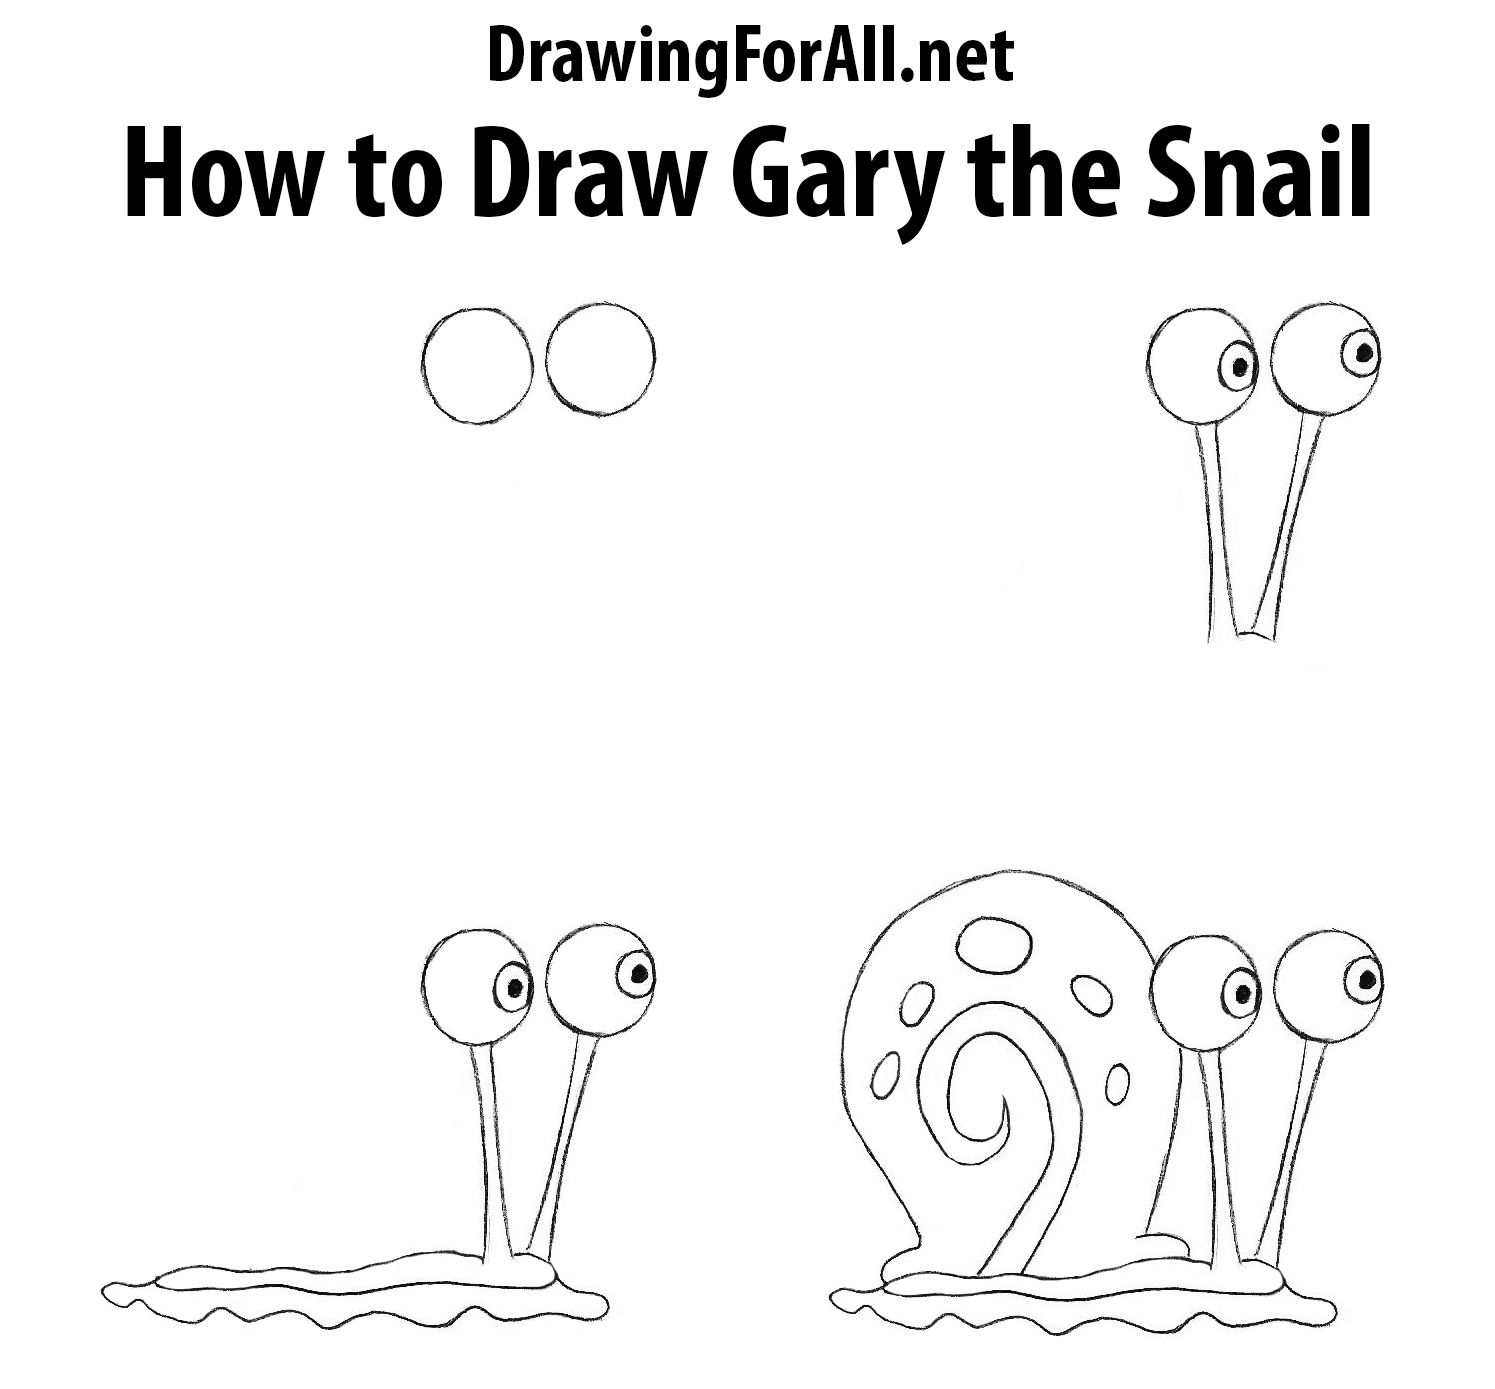 How To Draw Gary The Snail From Spongebob How To Draw Drawings